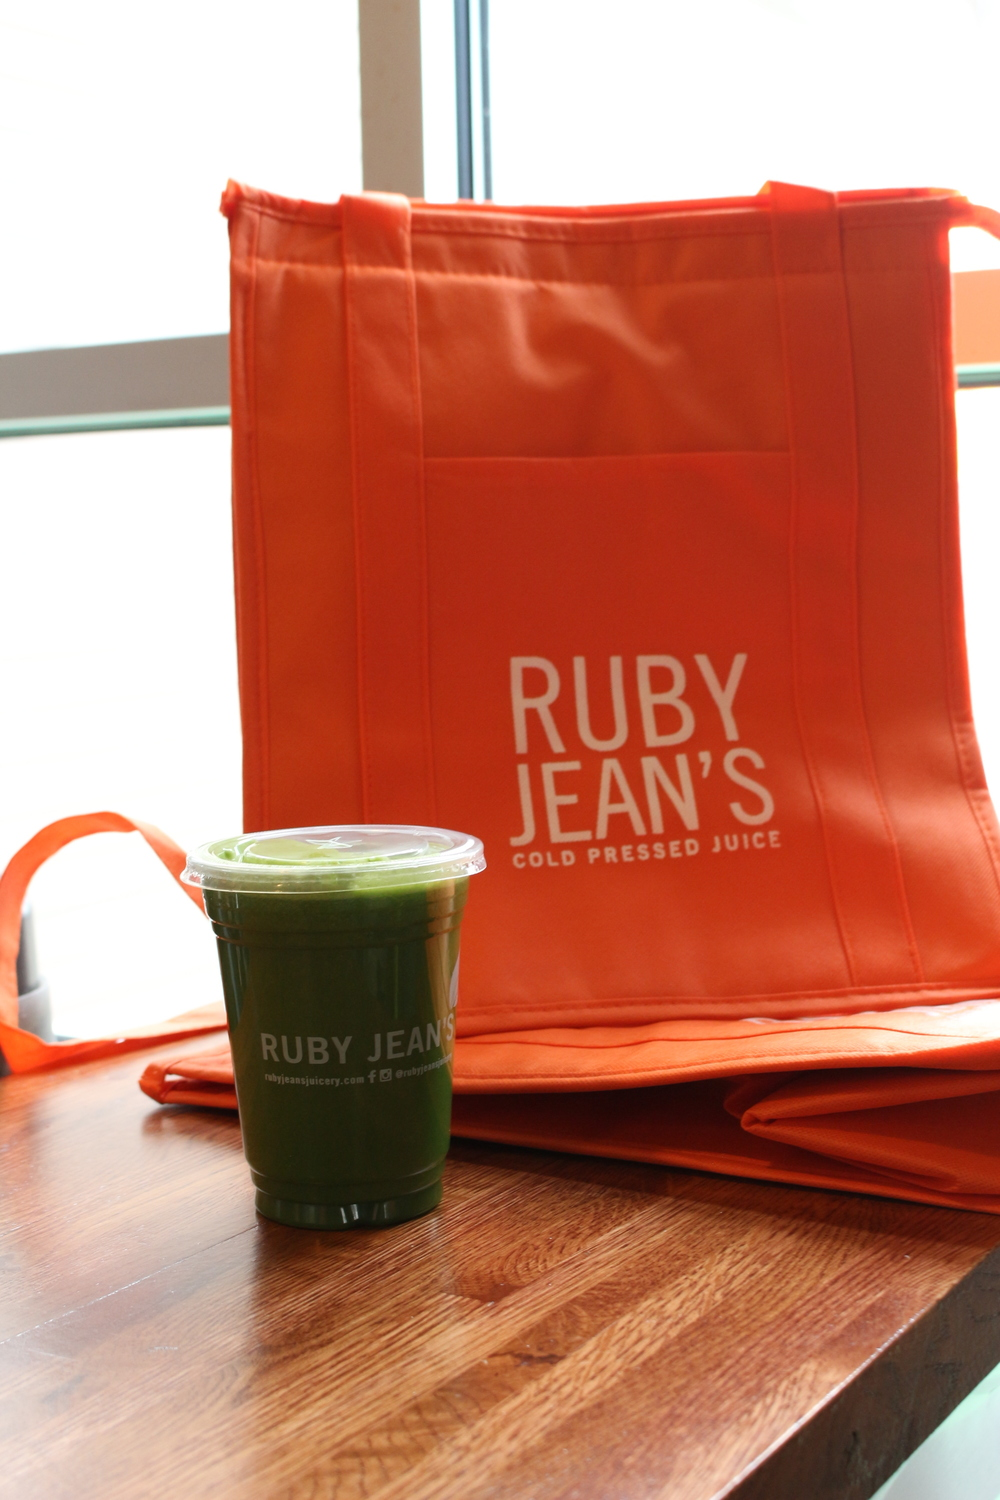 Ruby Jean's Juicery and City of Truth's #RocktheCity Week  by jasmine cooper of jasminediane.com in Kansas City, Missouri.